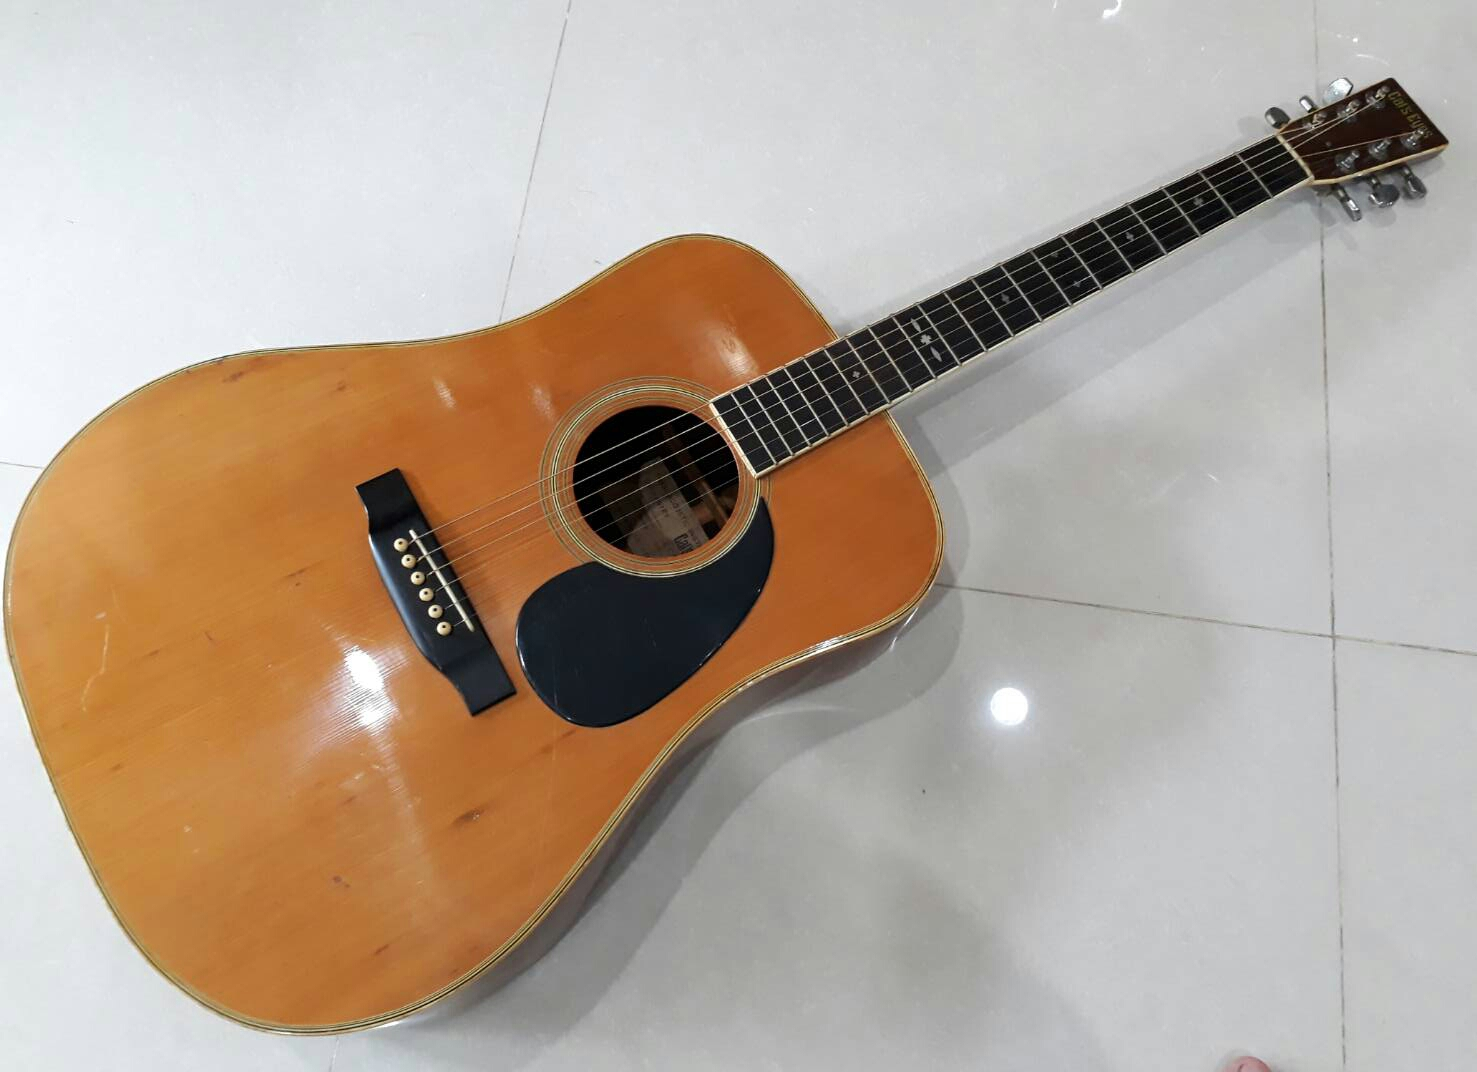 Tokai cat's eye CE-300 japan